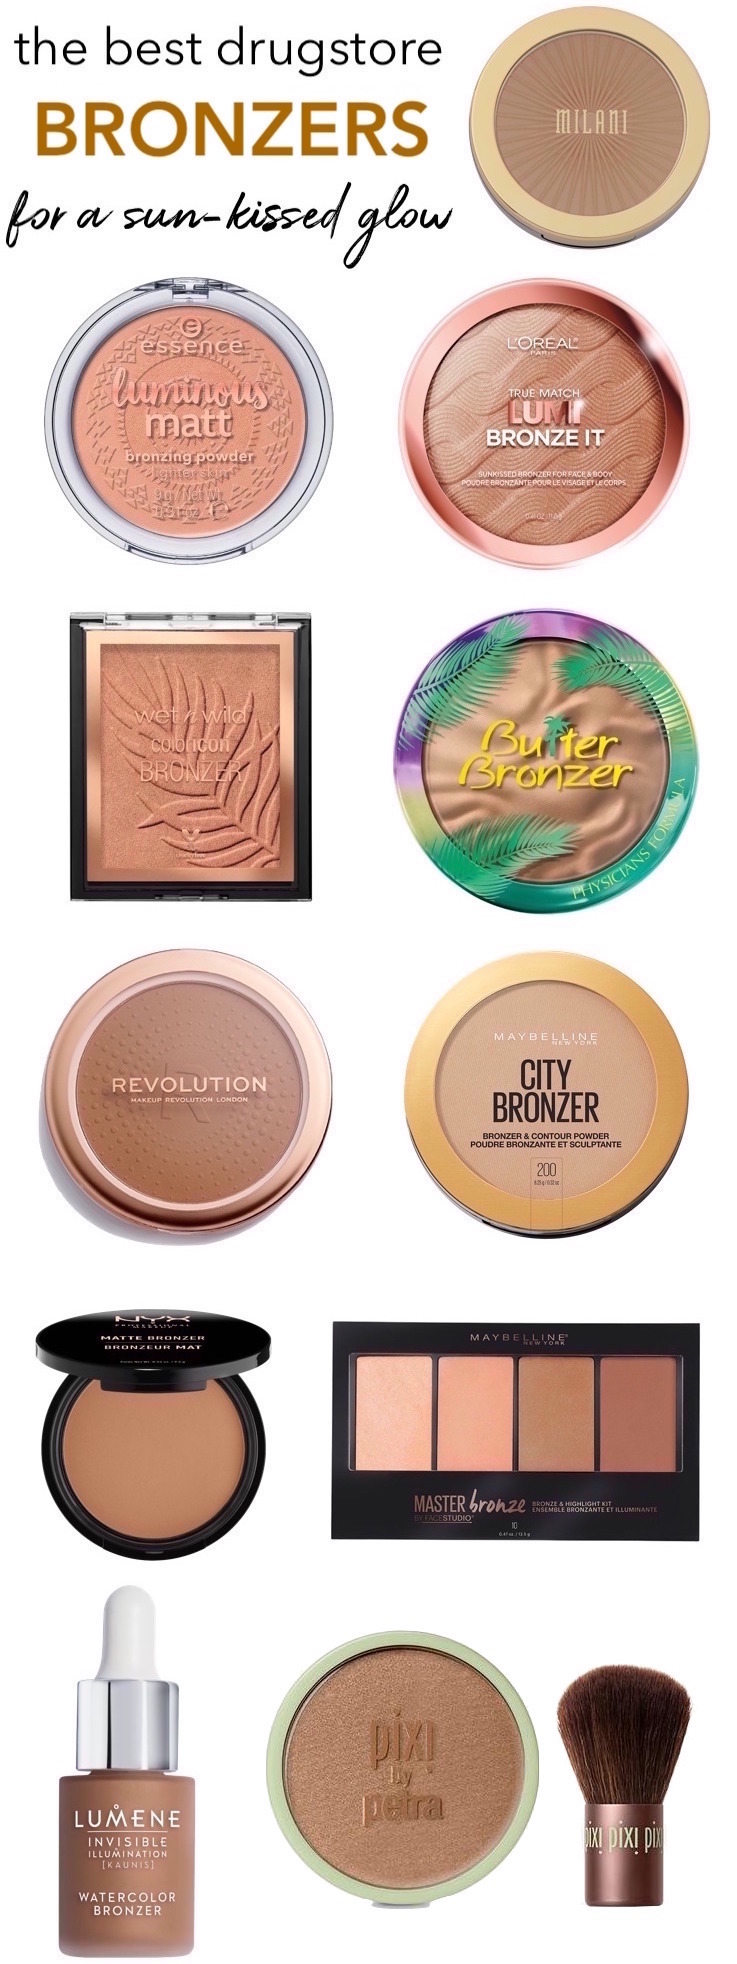 The Best Drugstore Bronzers For a Naturally Sun-Kissed Glow